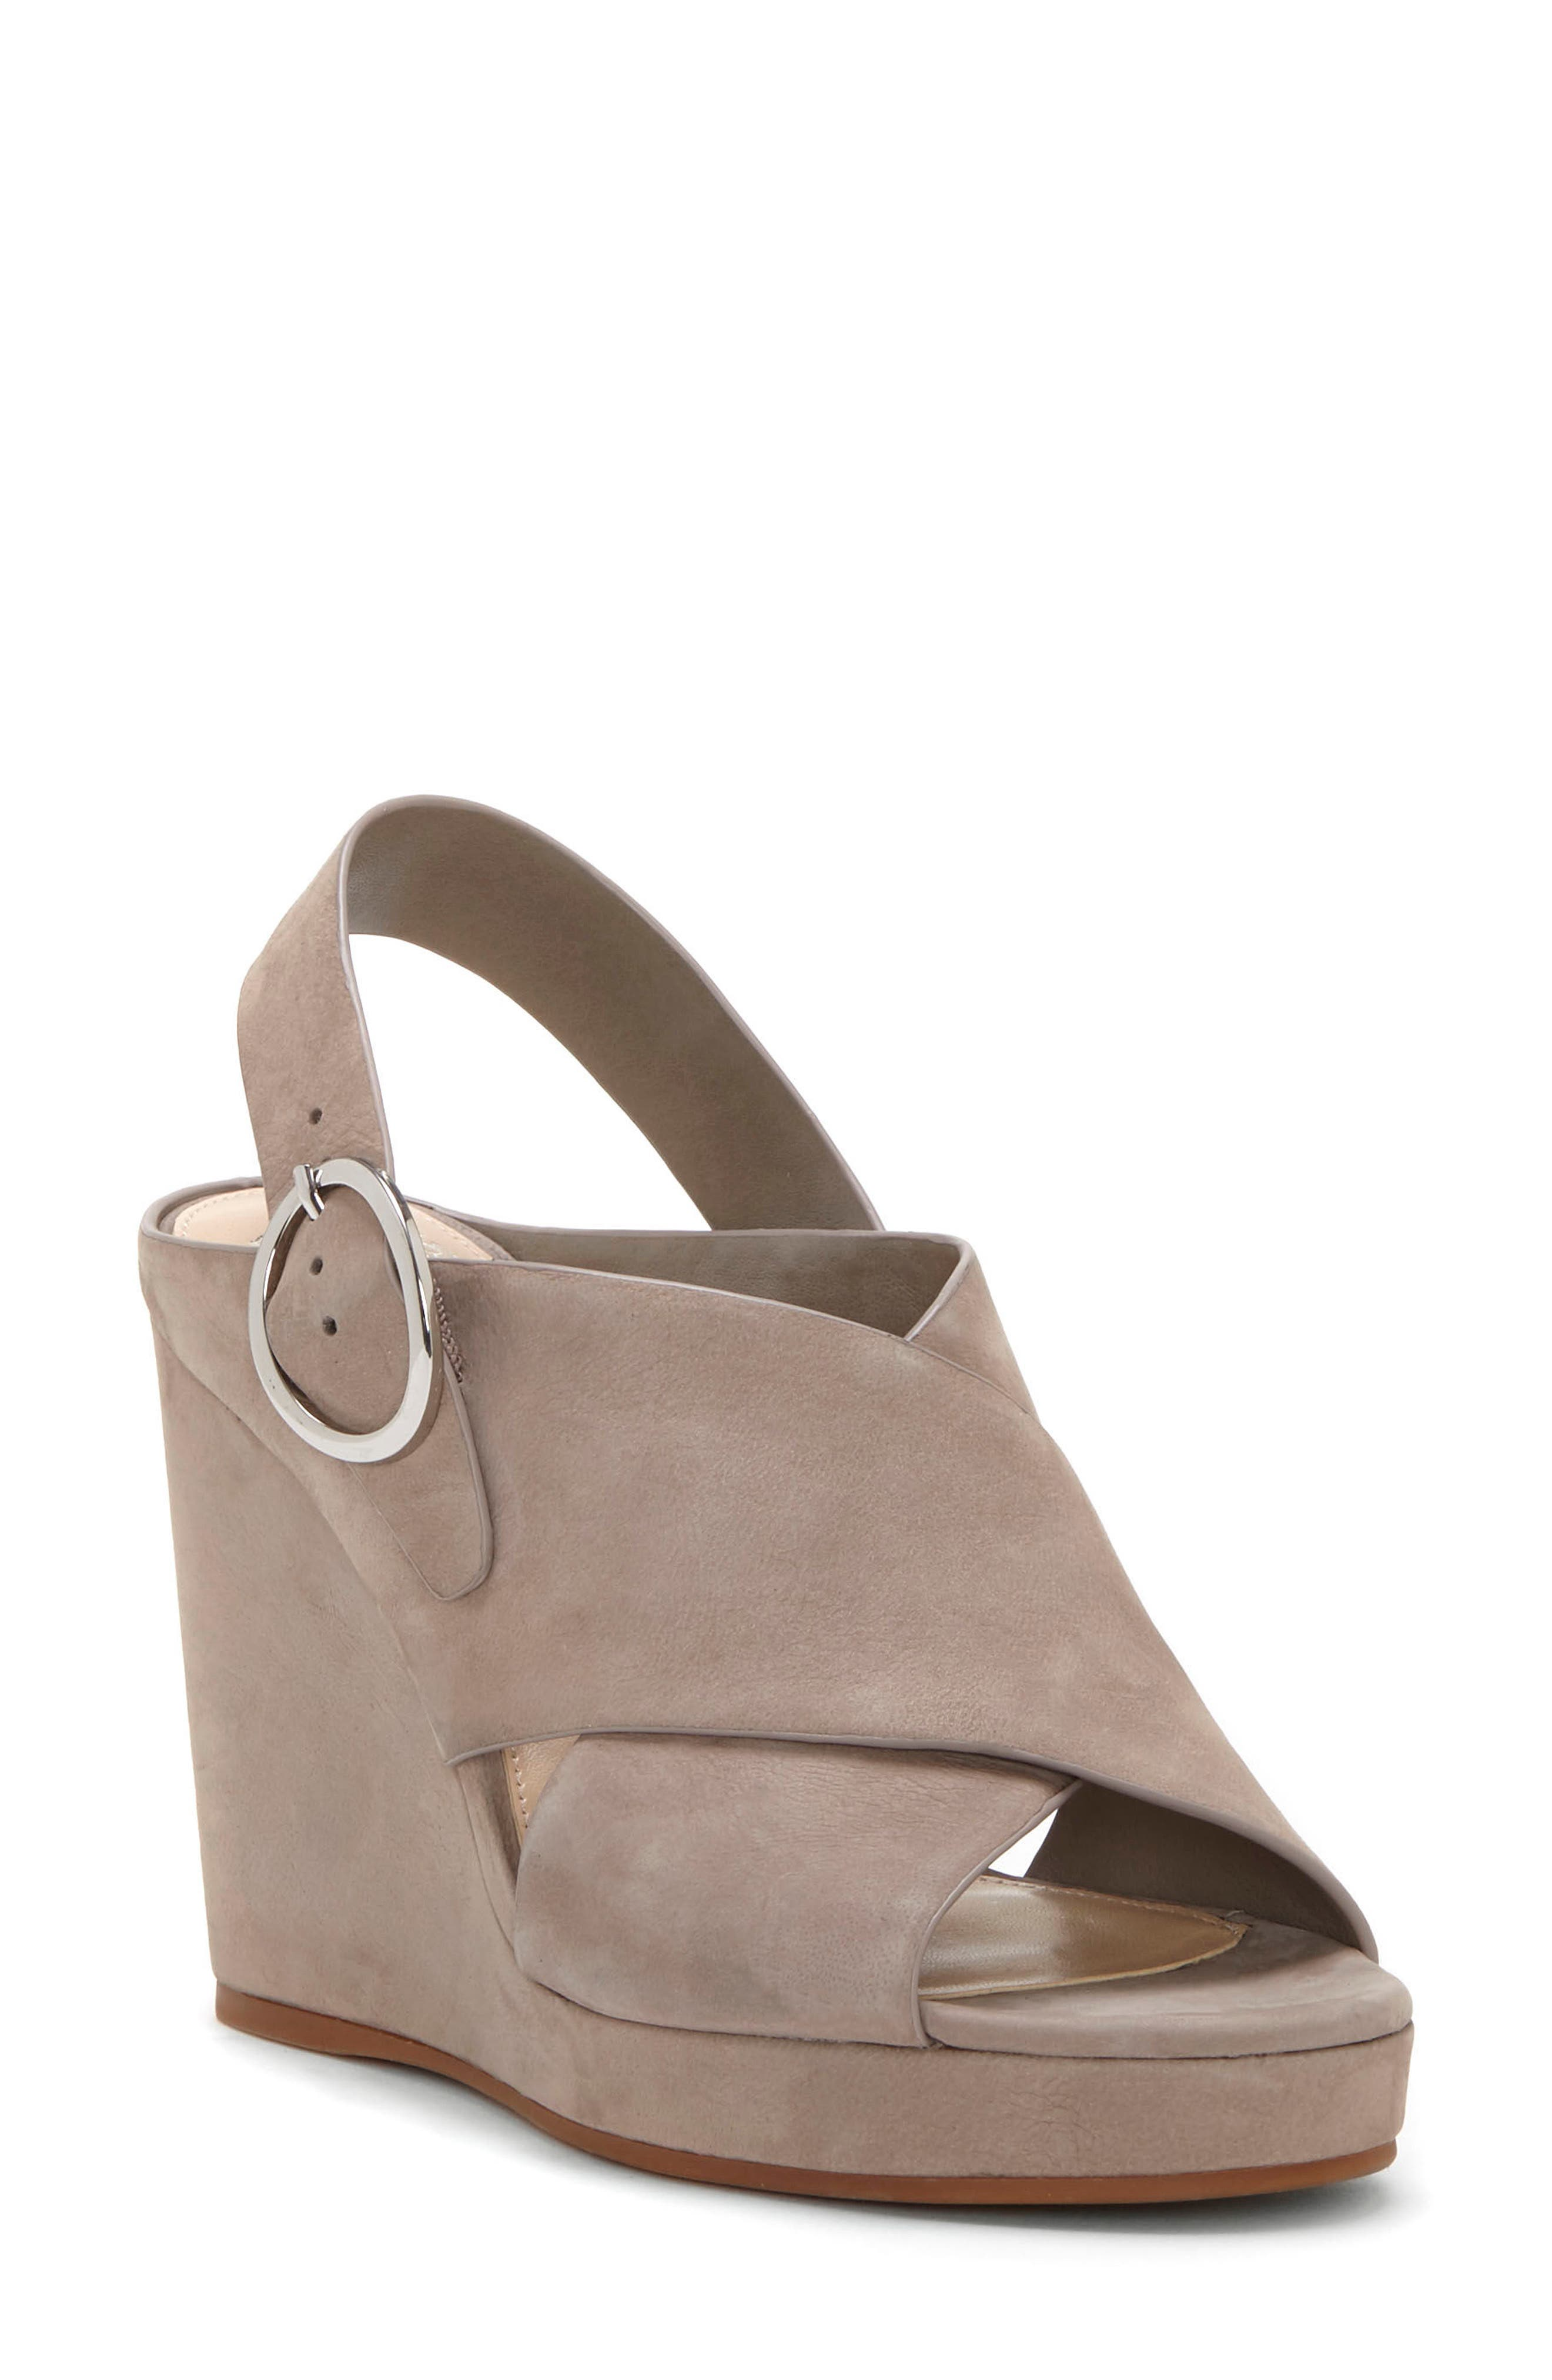 Iteena Wedge Sandal,                             Main thumbnail 1, color,                             Hippo Grey Leather